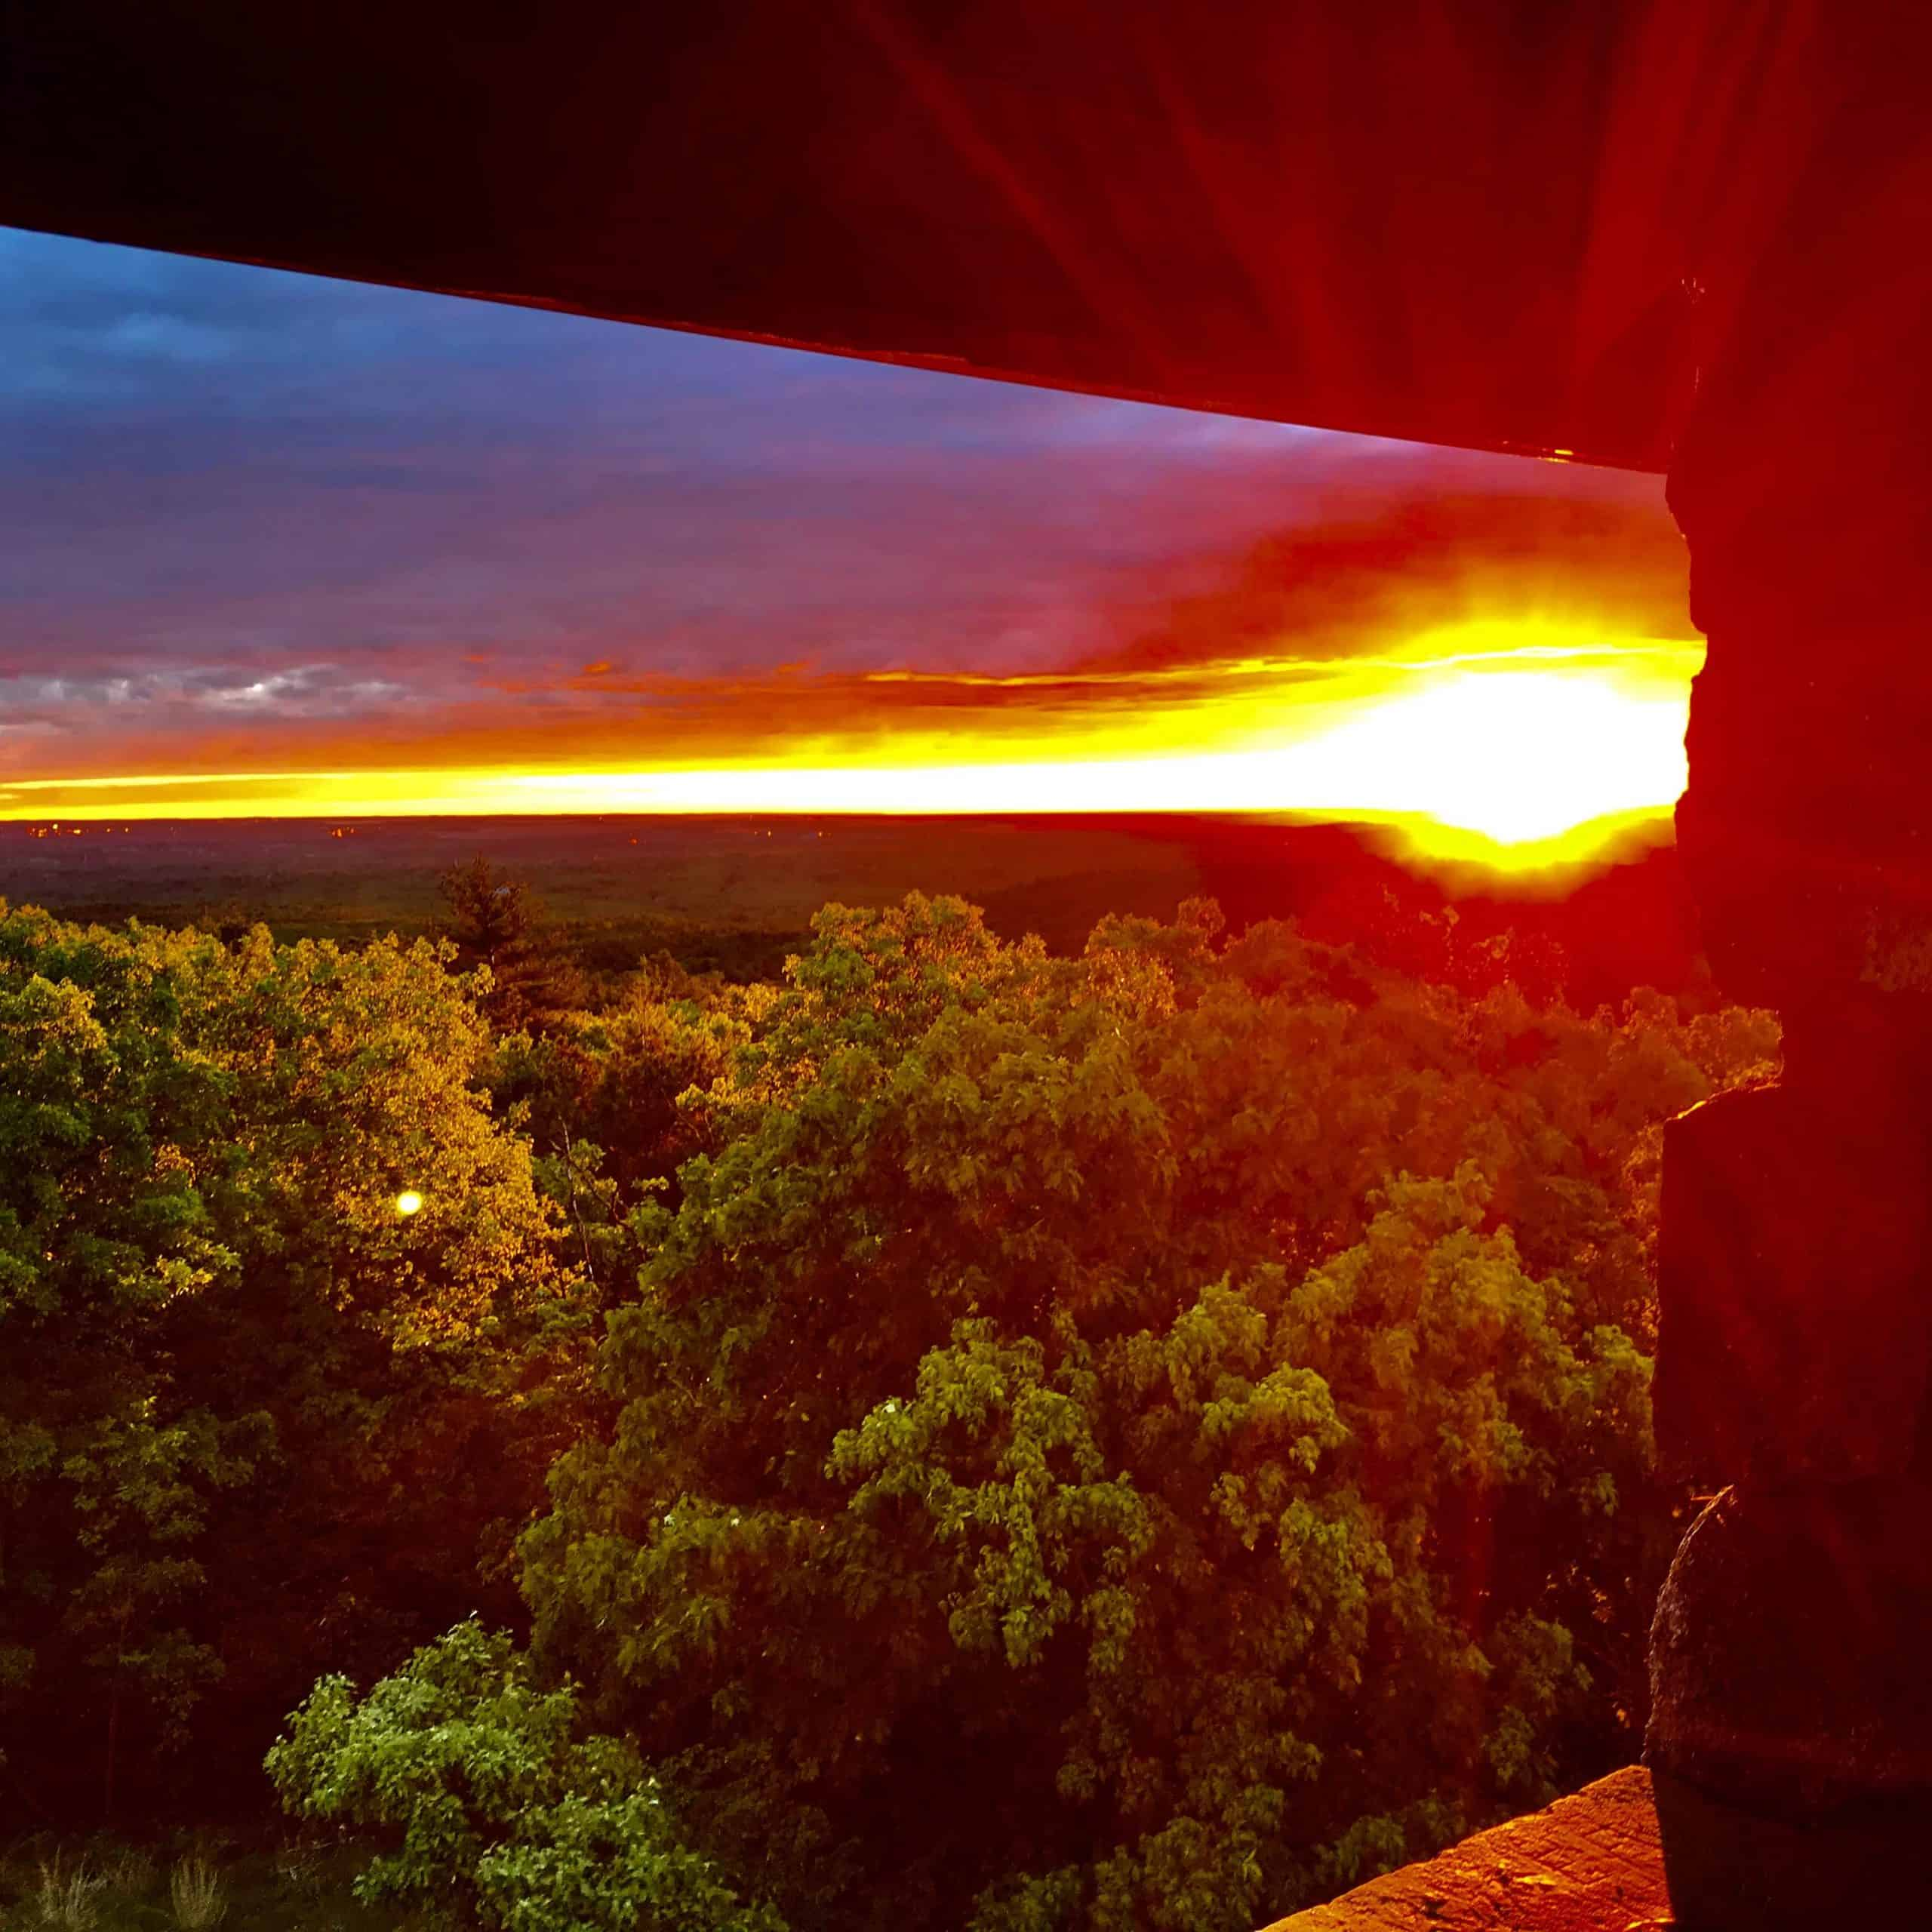 sunrise from the observation tower